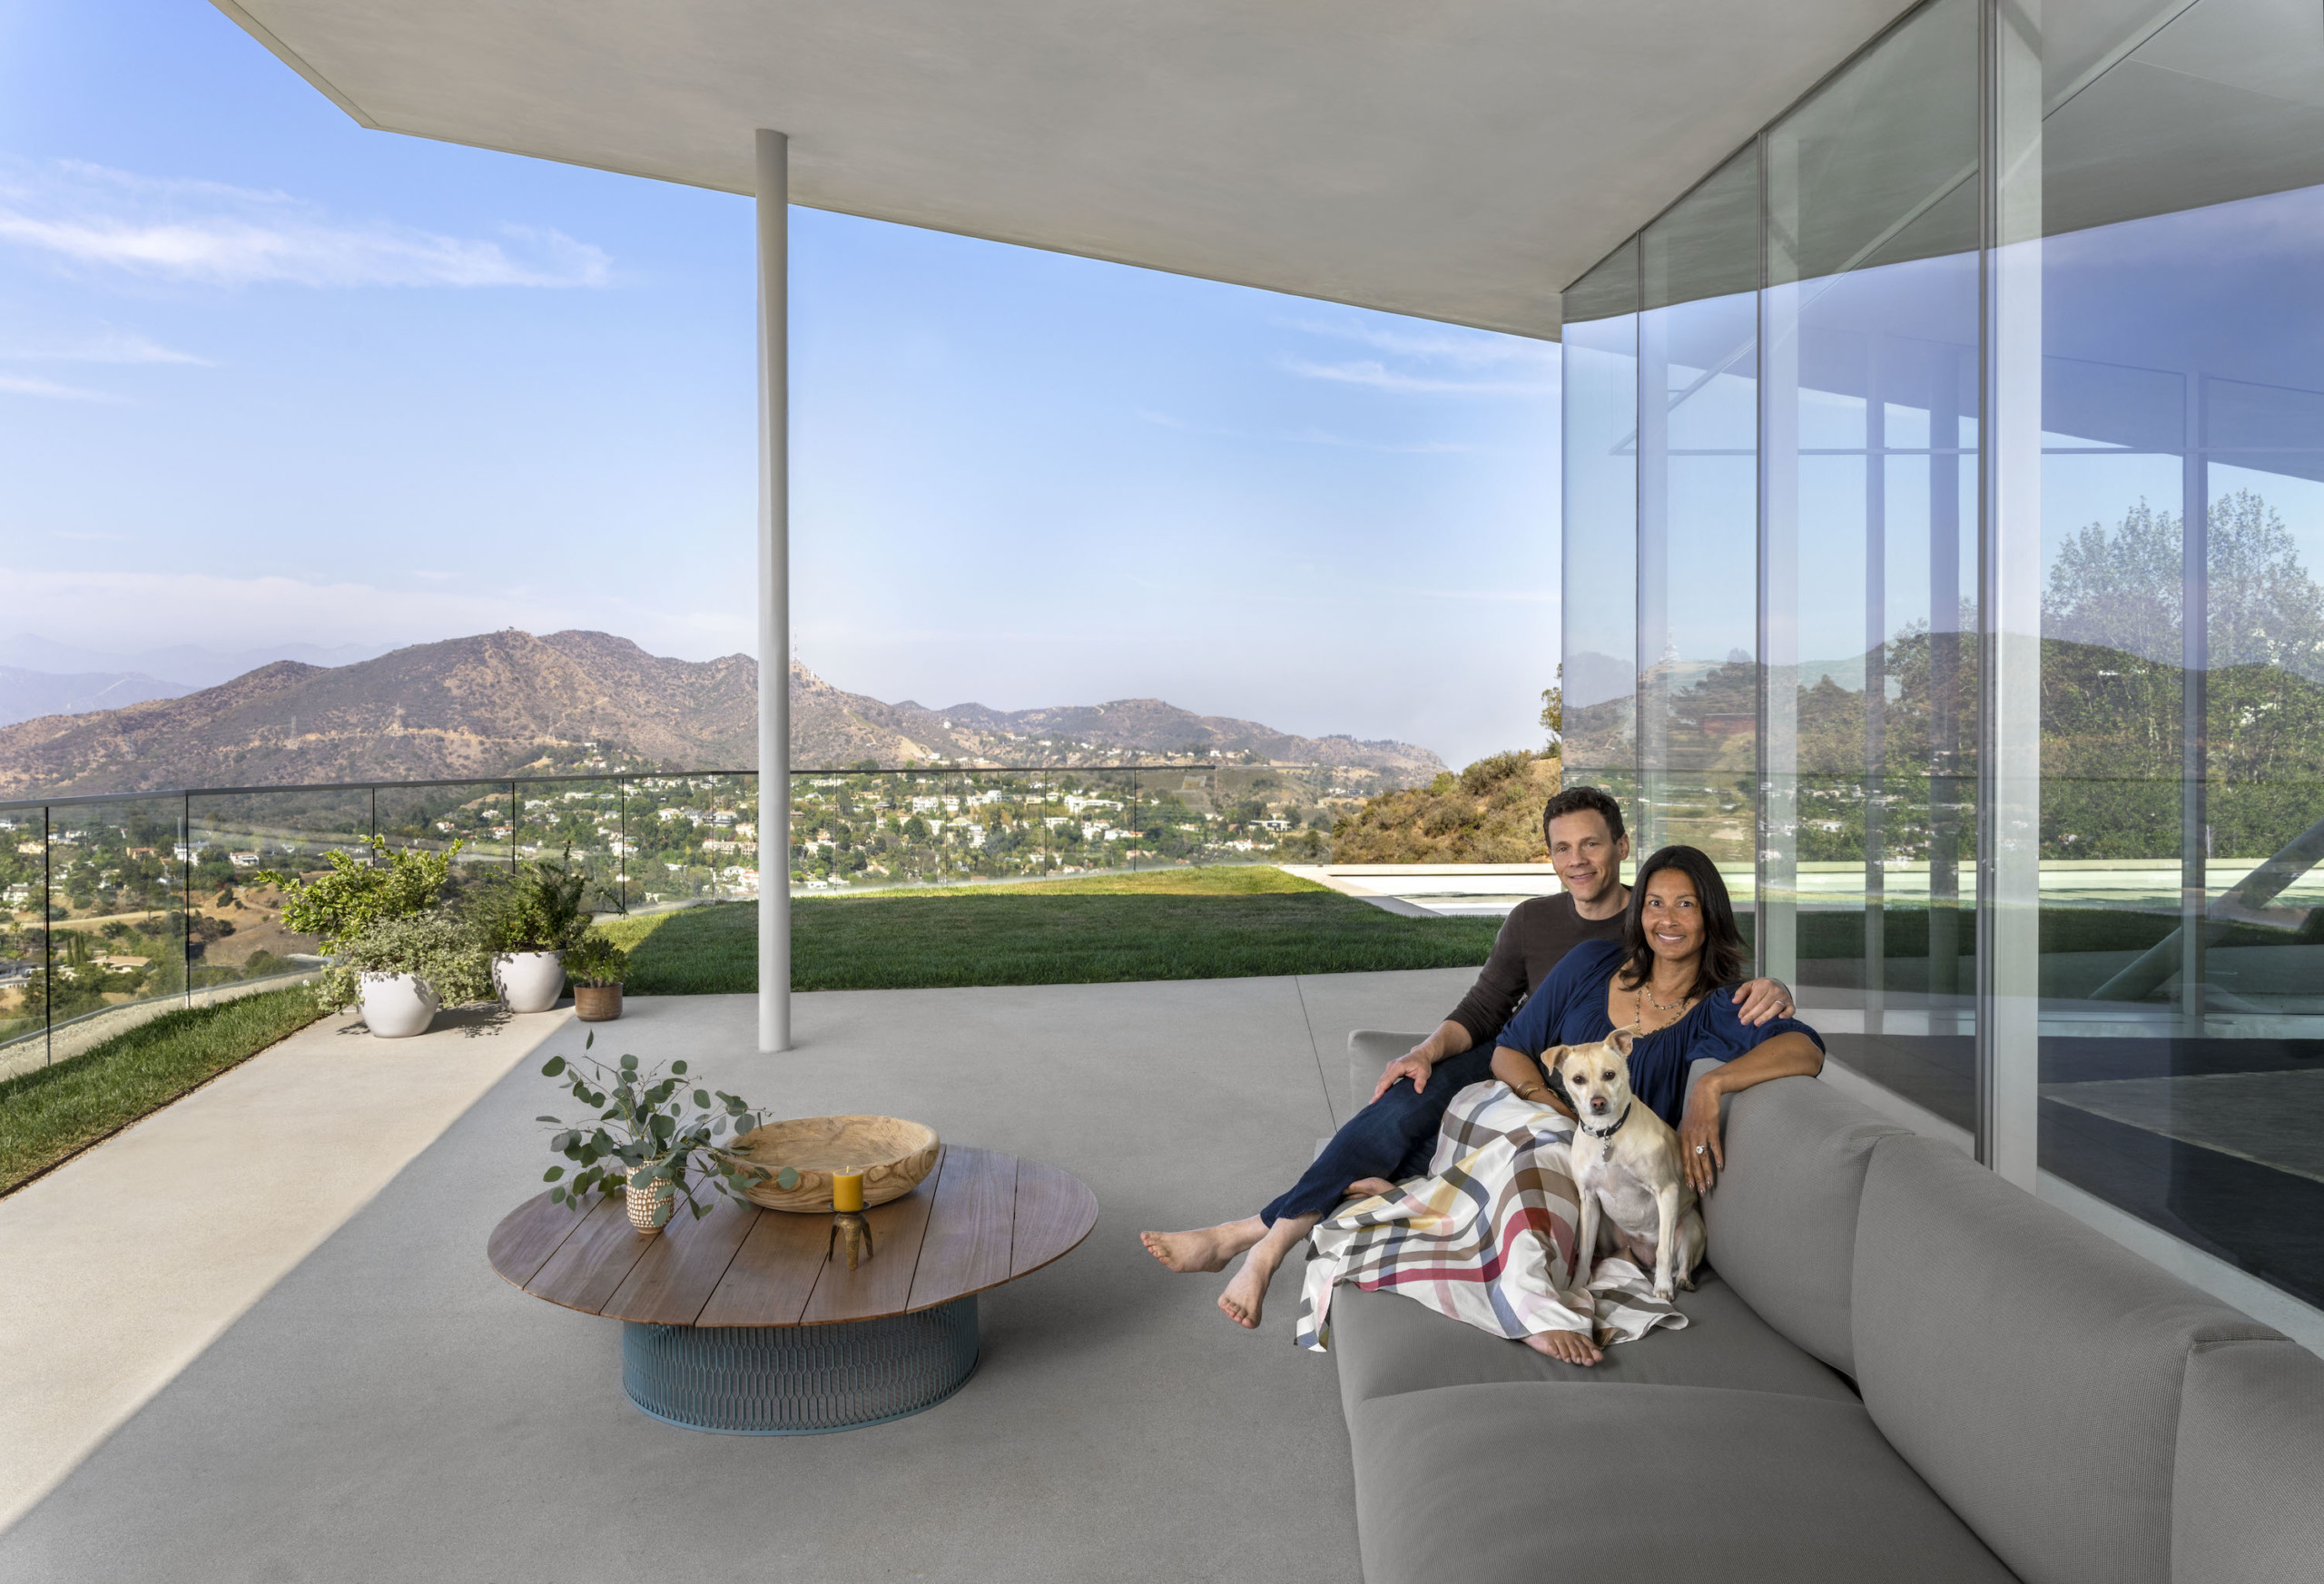 smiling couple sitting on outdoor couch on balcony of modern home, with mountains of LA in background